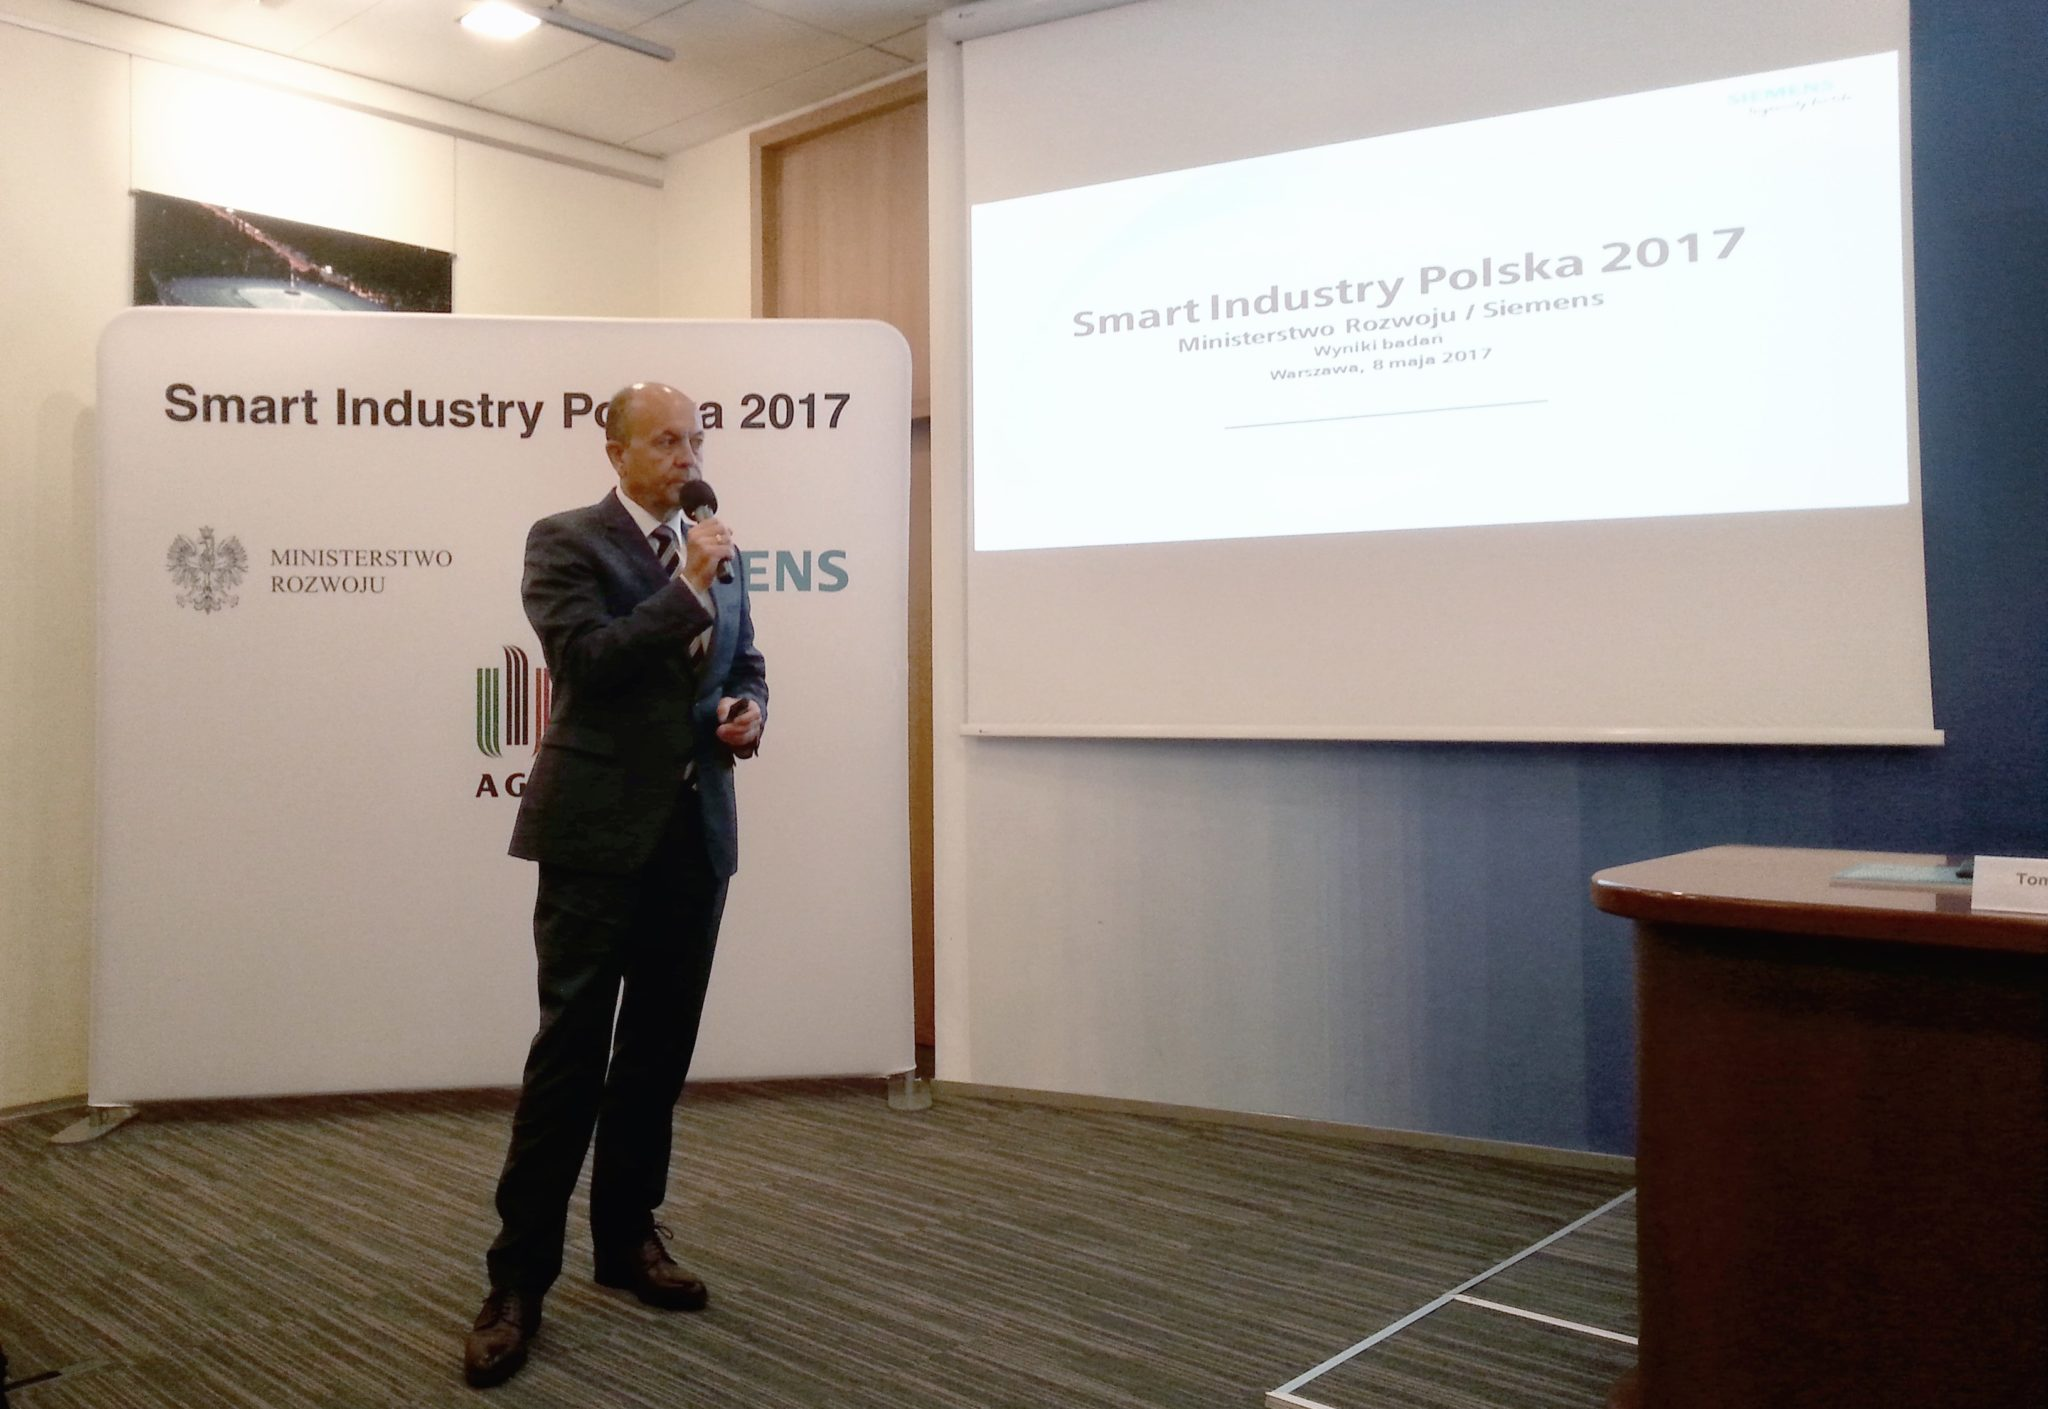 Smart Industry Polska 2017